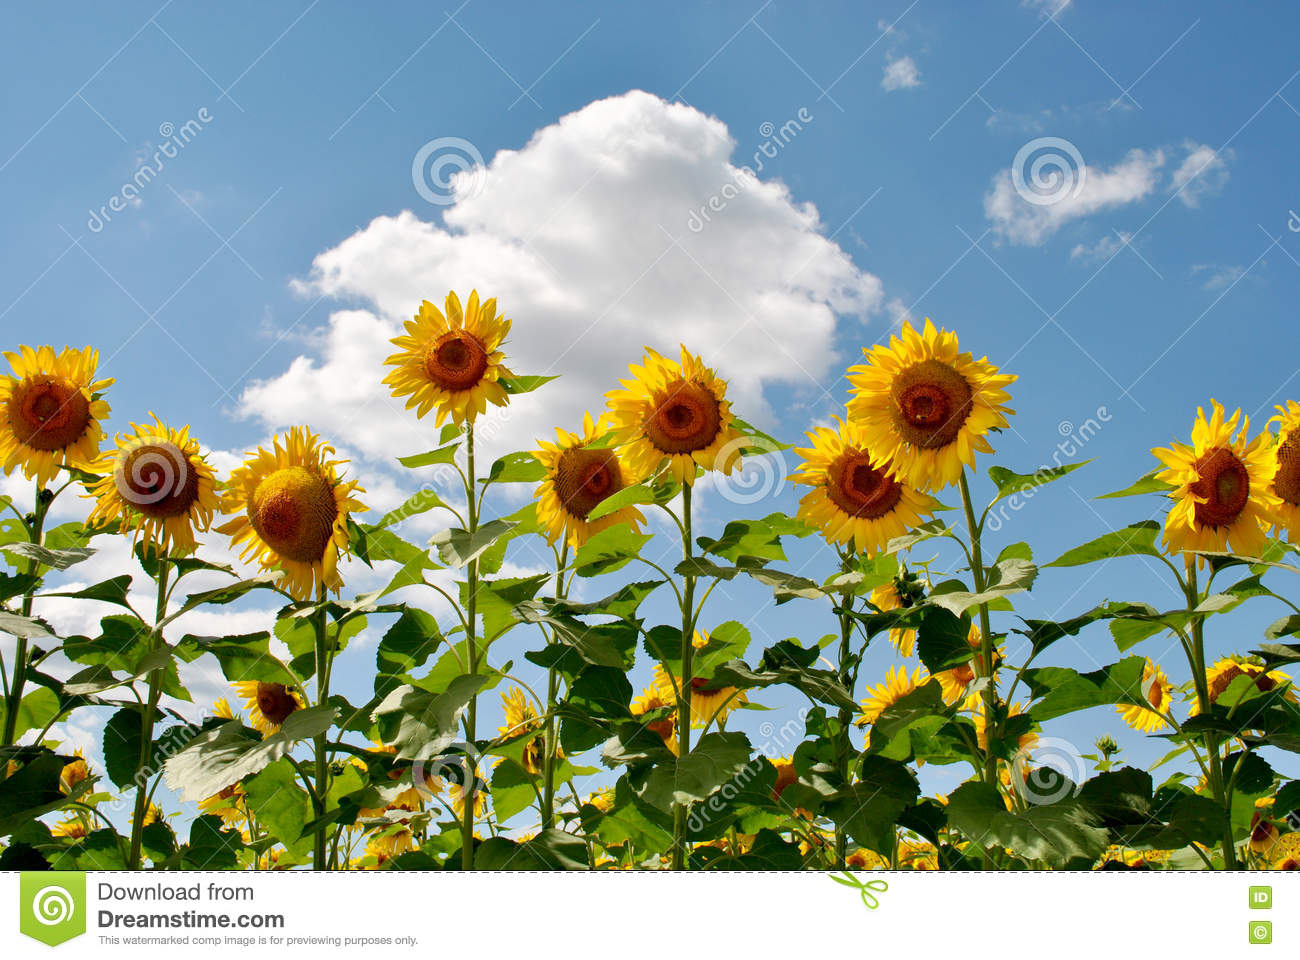 Download Tall Sunflowers stock photo. Image of bloom, many, bright - 78173900